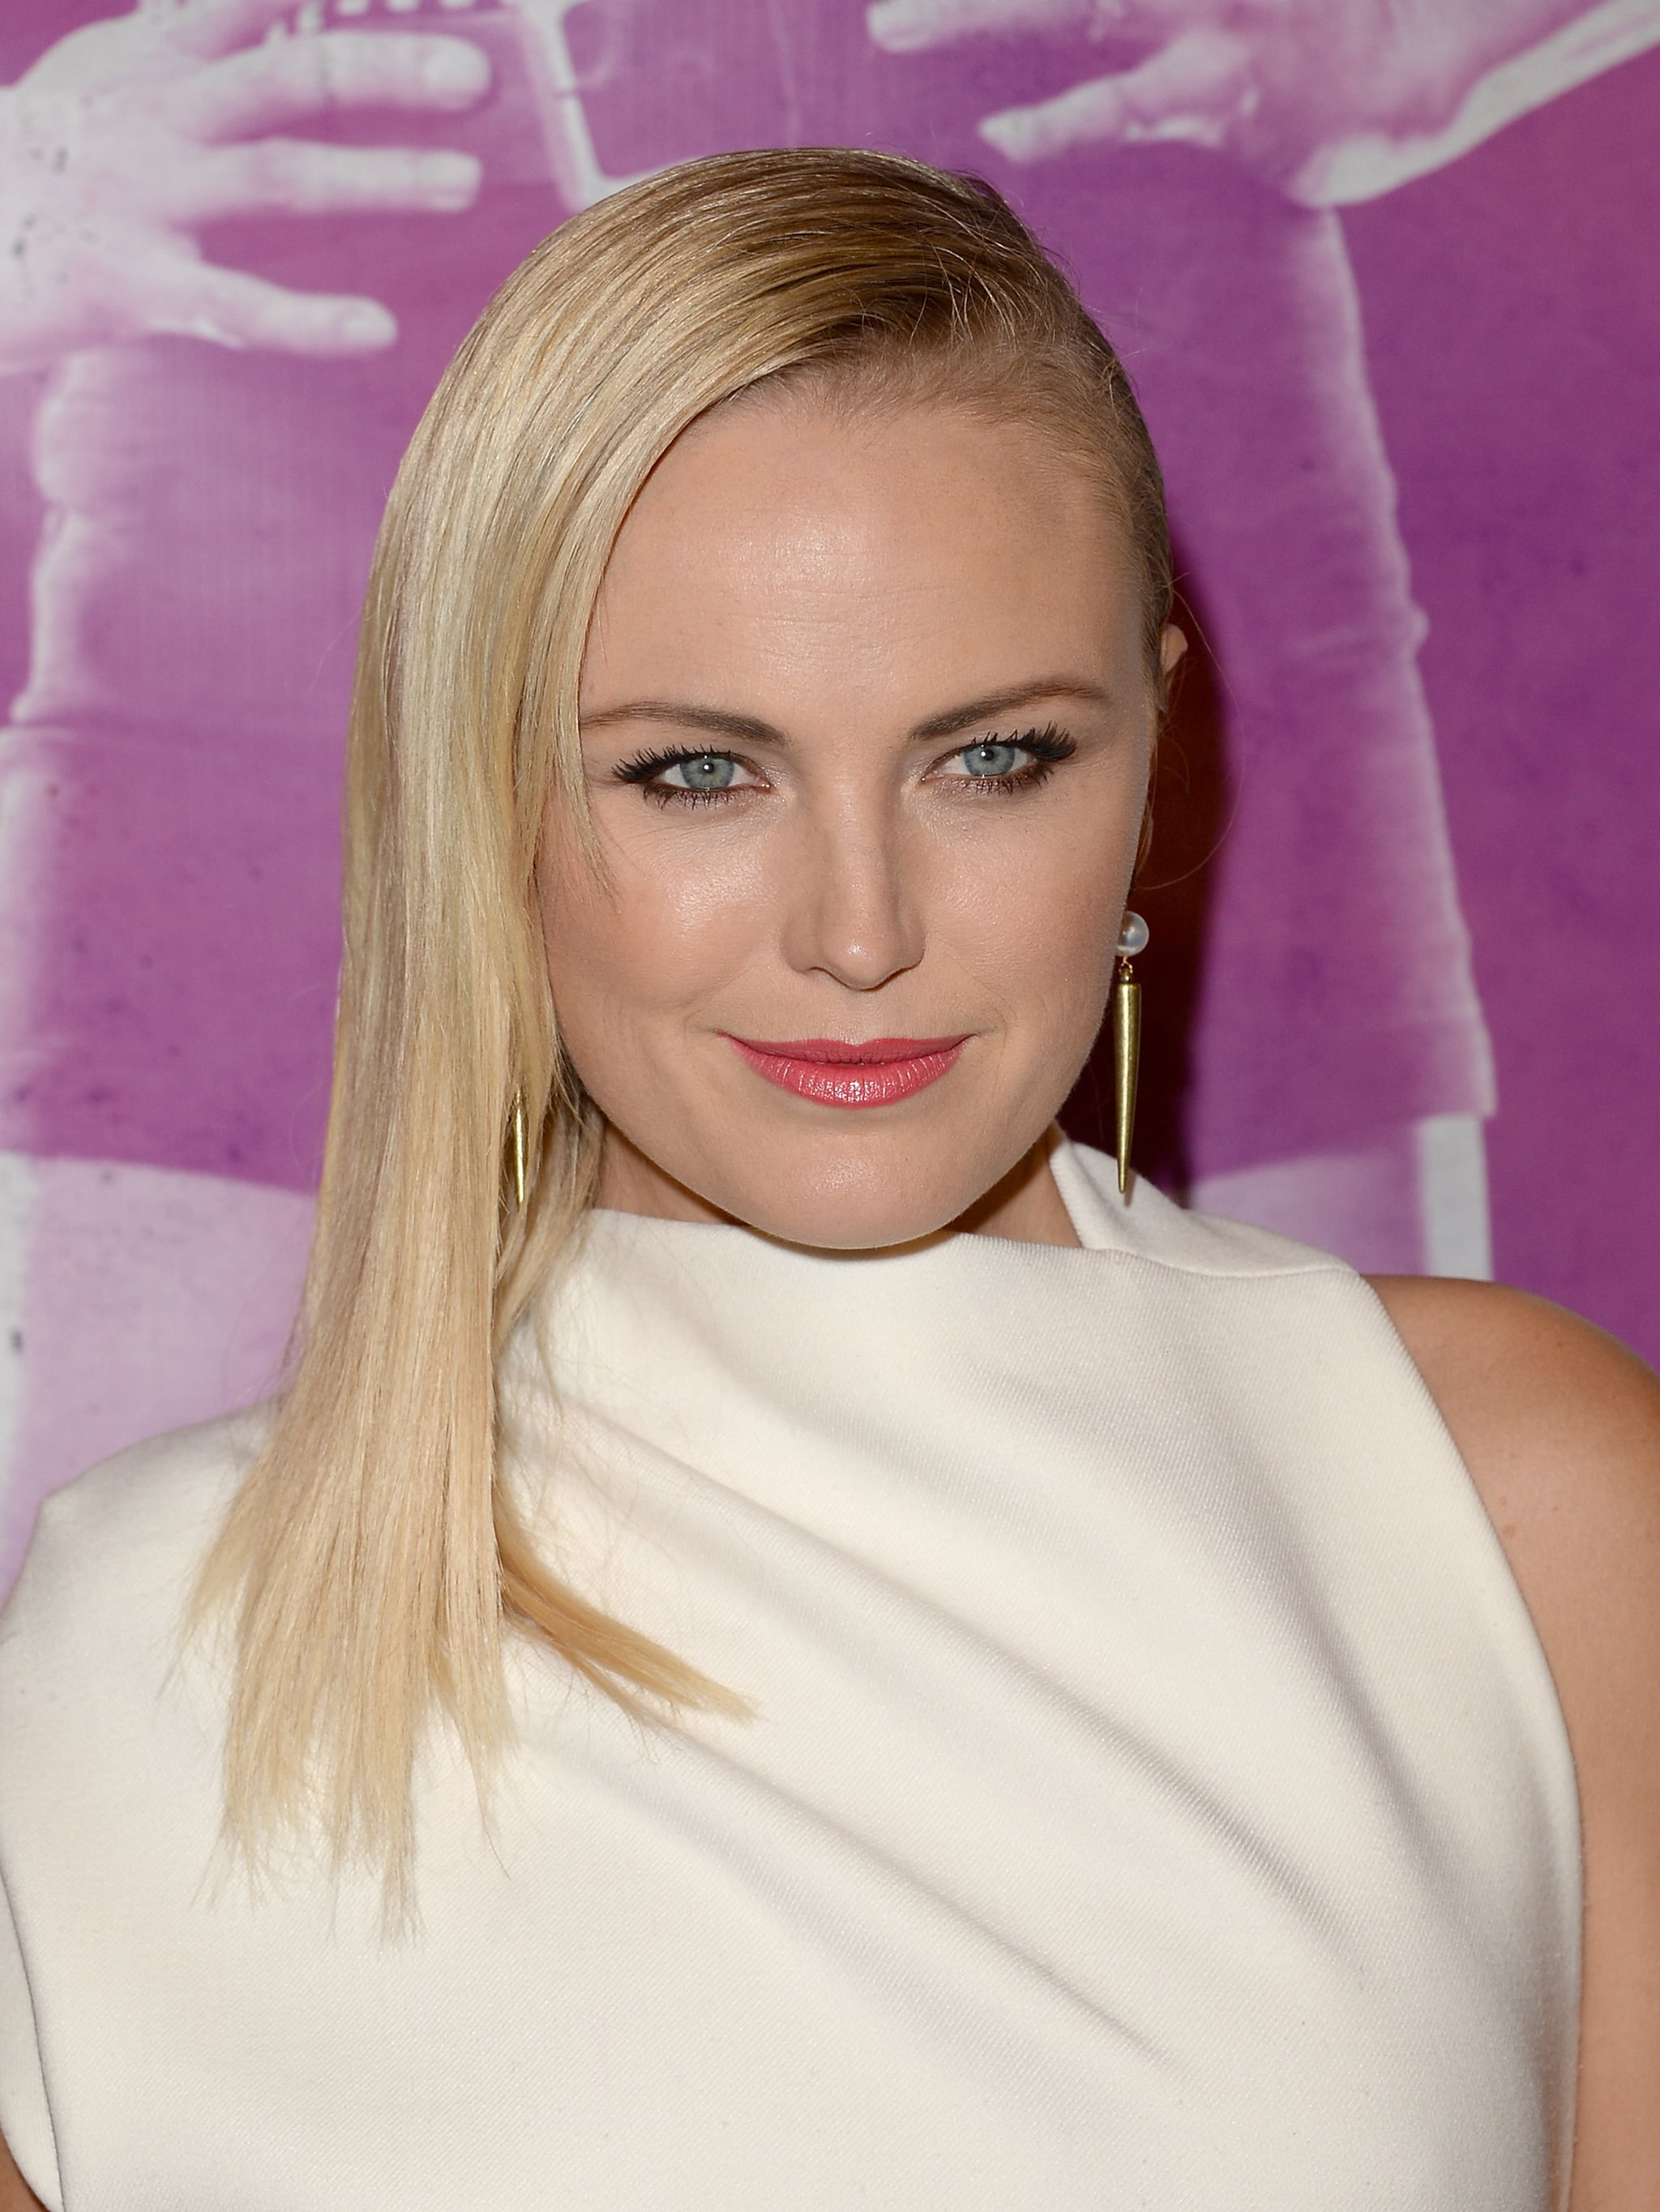 Upon first glance, you would think Malin Akerman had an appointment with the shears, but it's just a superstraight, slicked-back style.